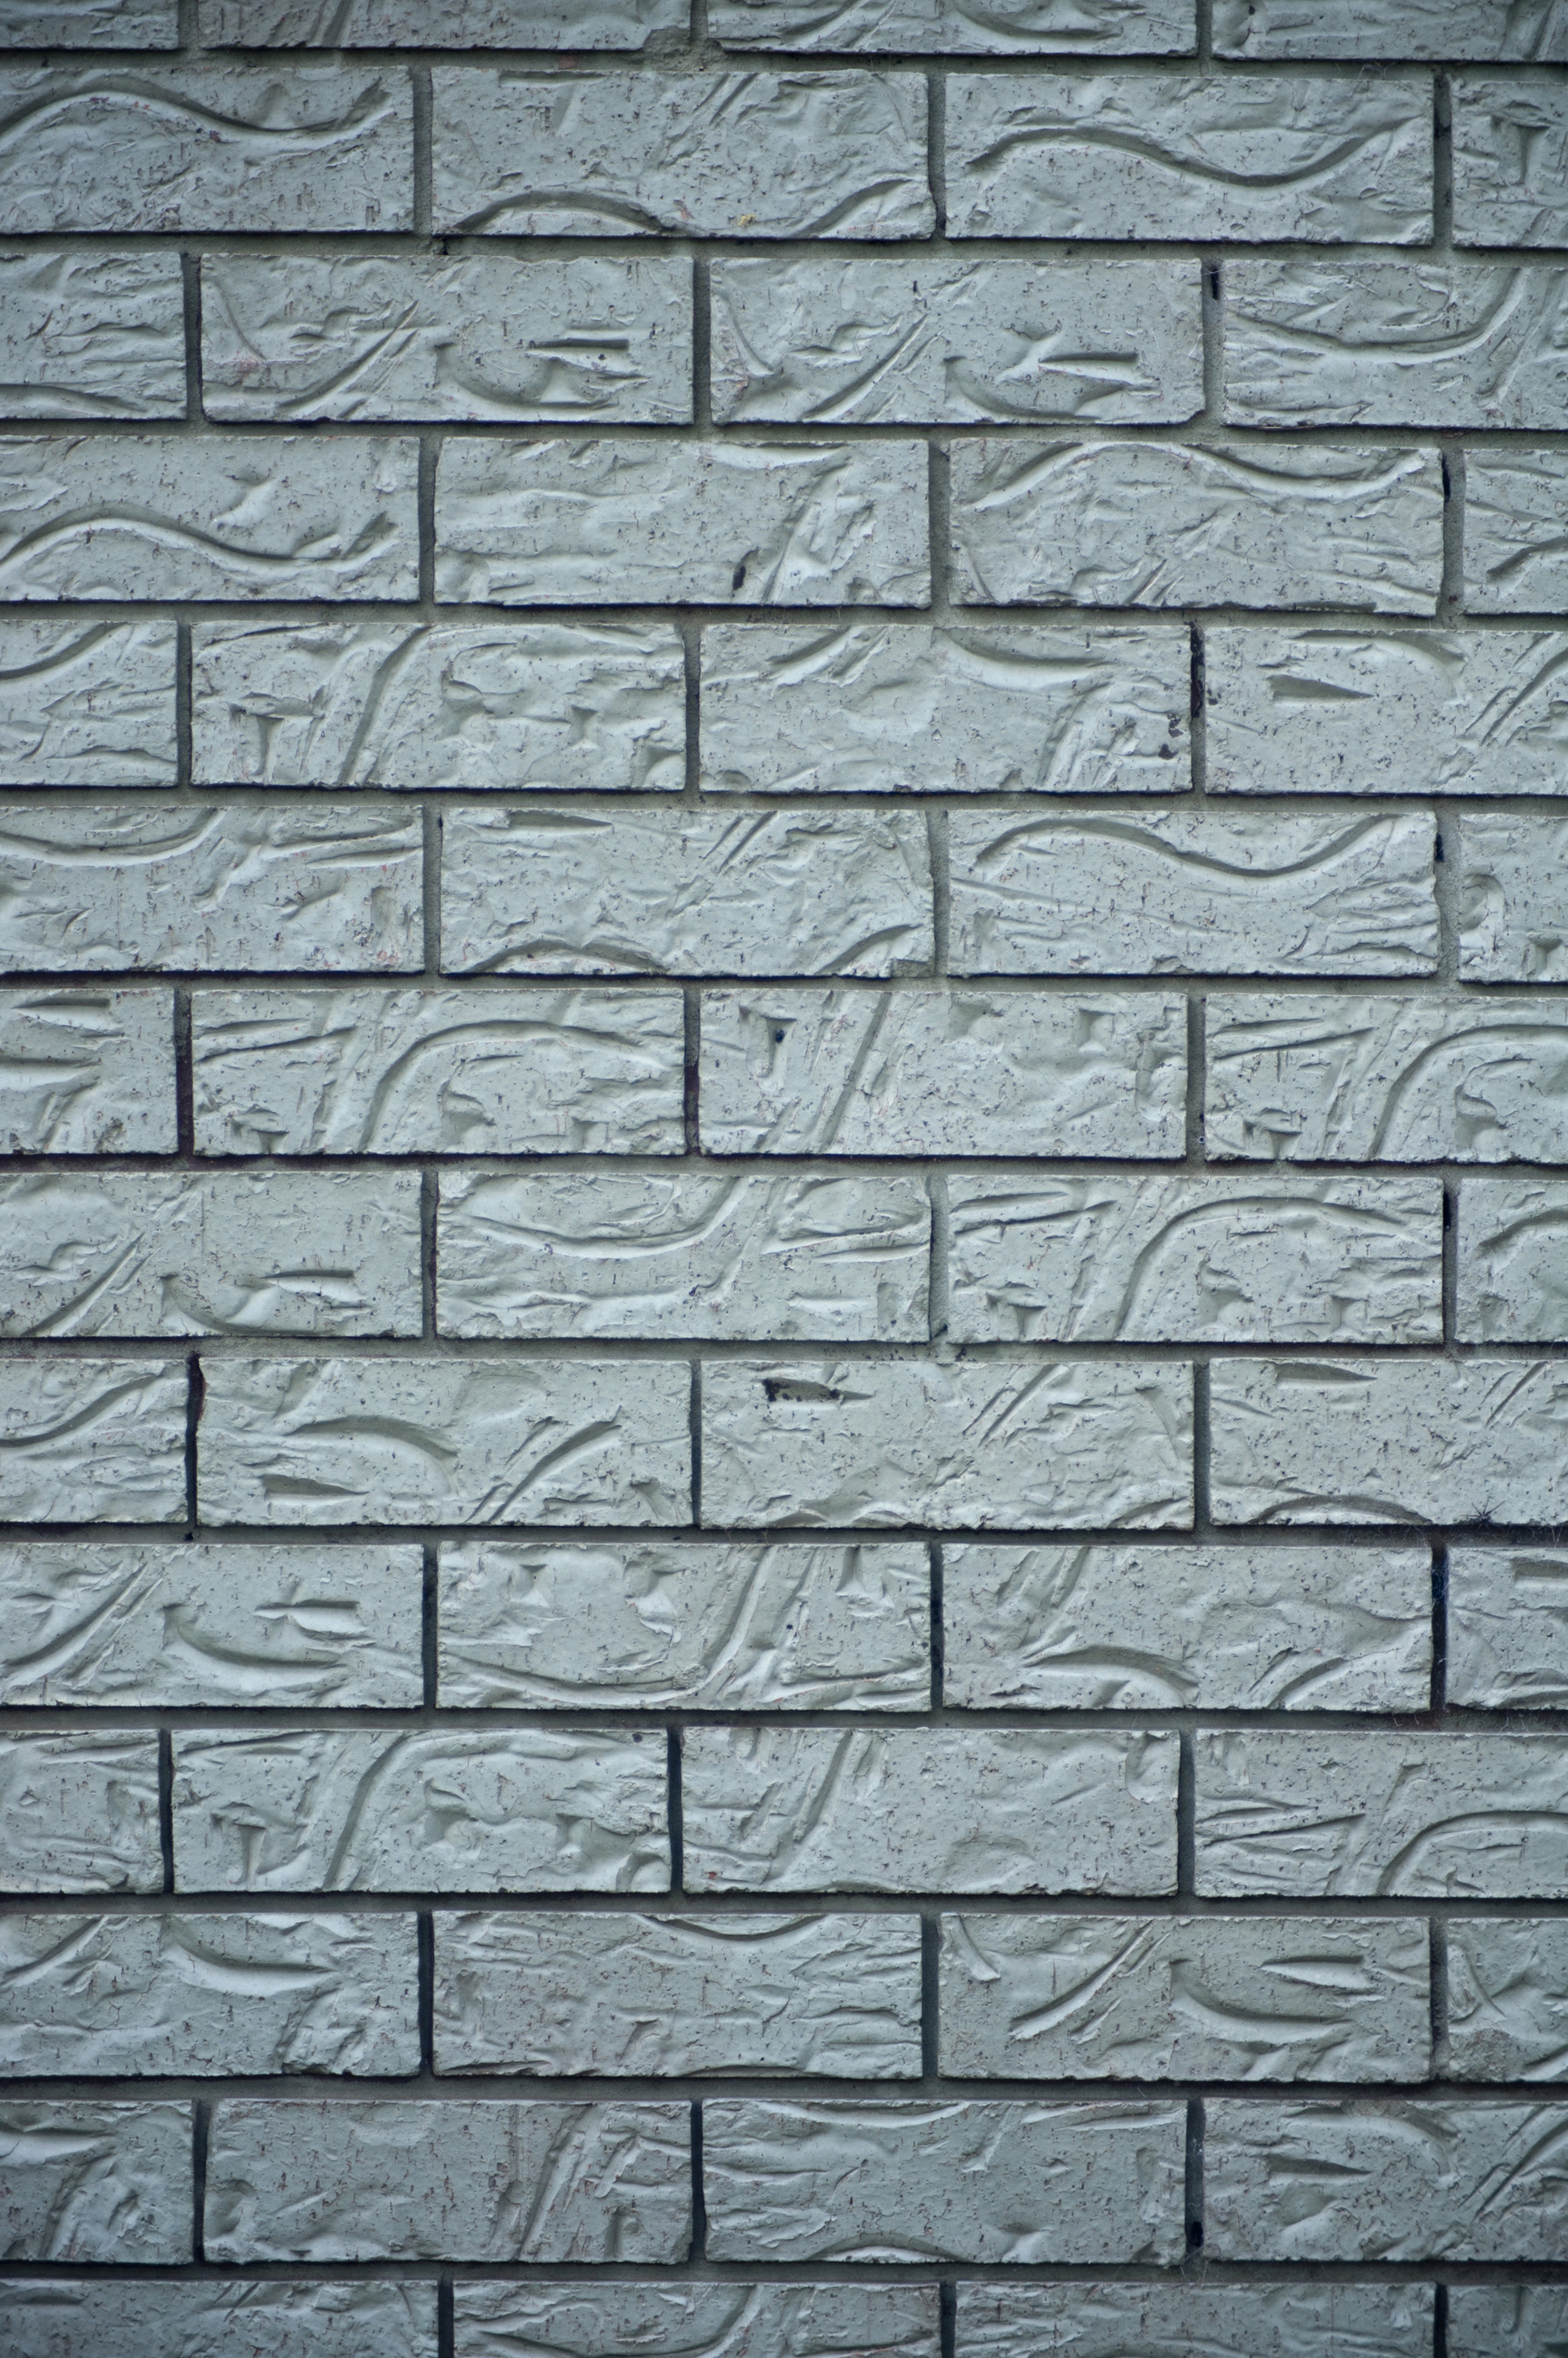 Textured Gray Brick Wall with Abstract Carvings for Background Designs, Emphasizing Copy Space.